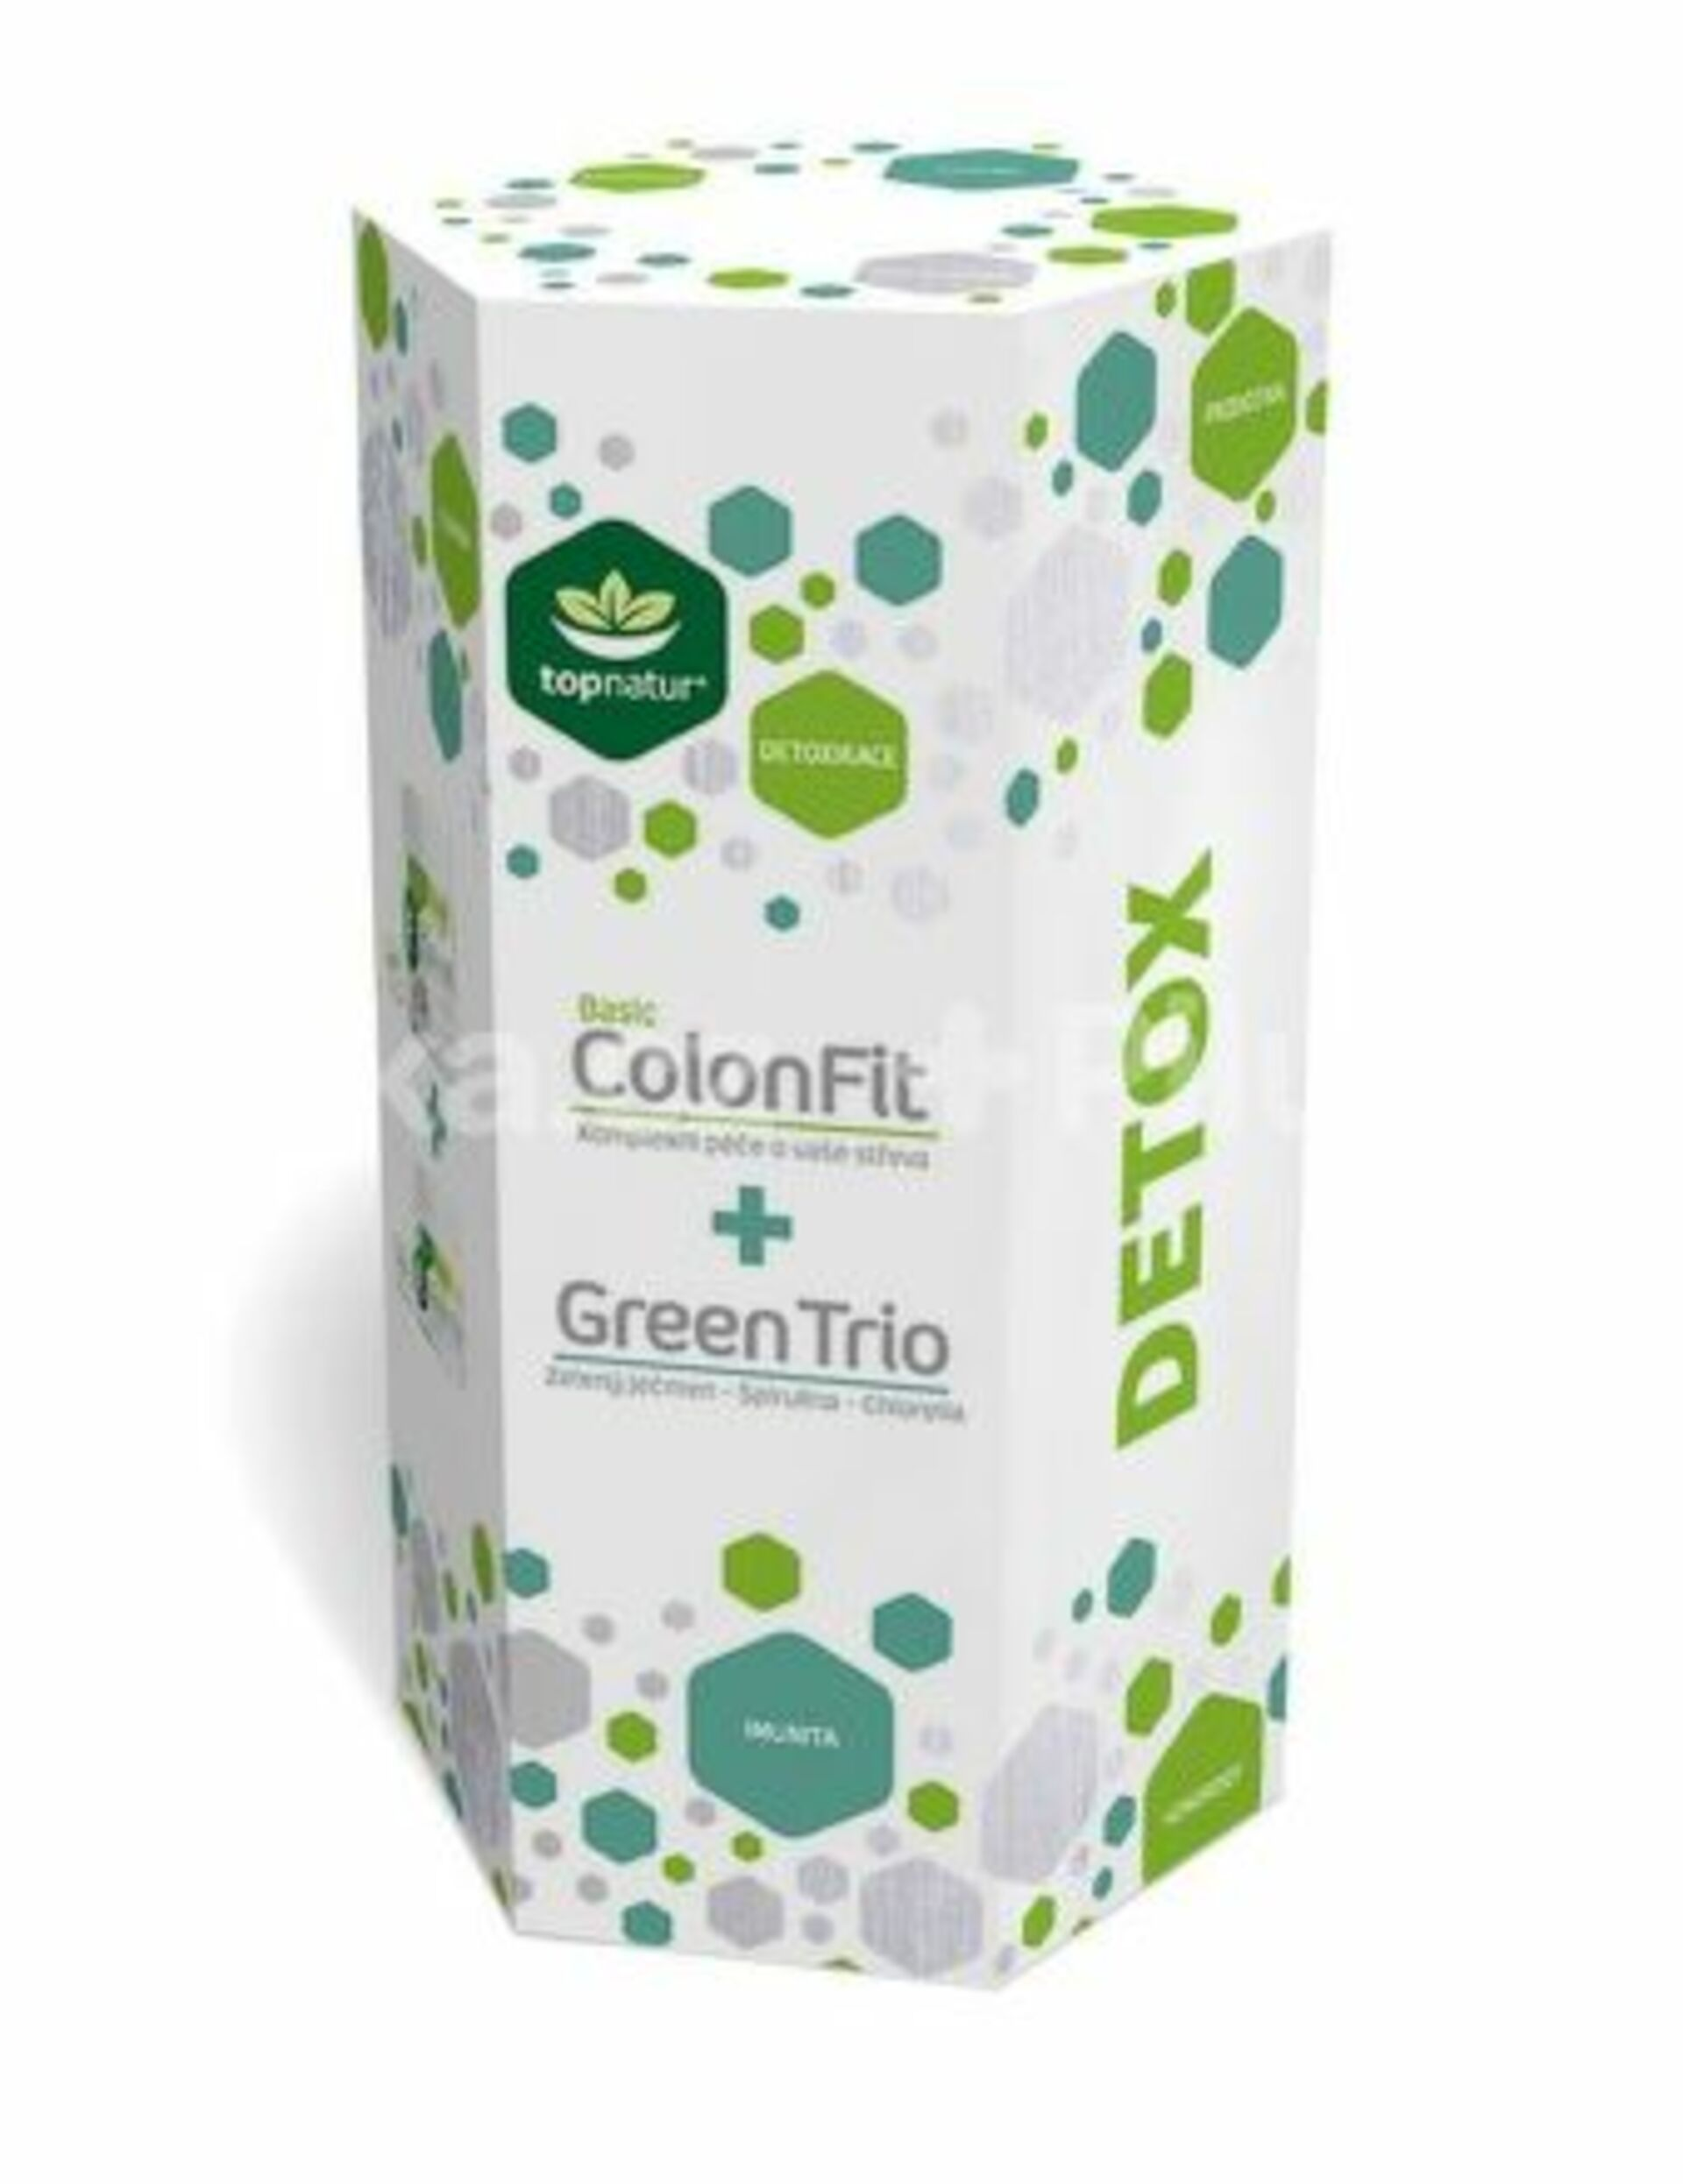 Topnatur DETOX - ColonFit Basic + Green Trio